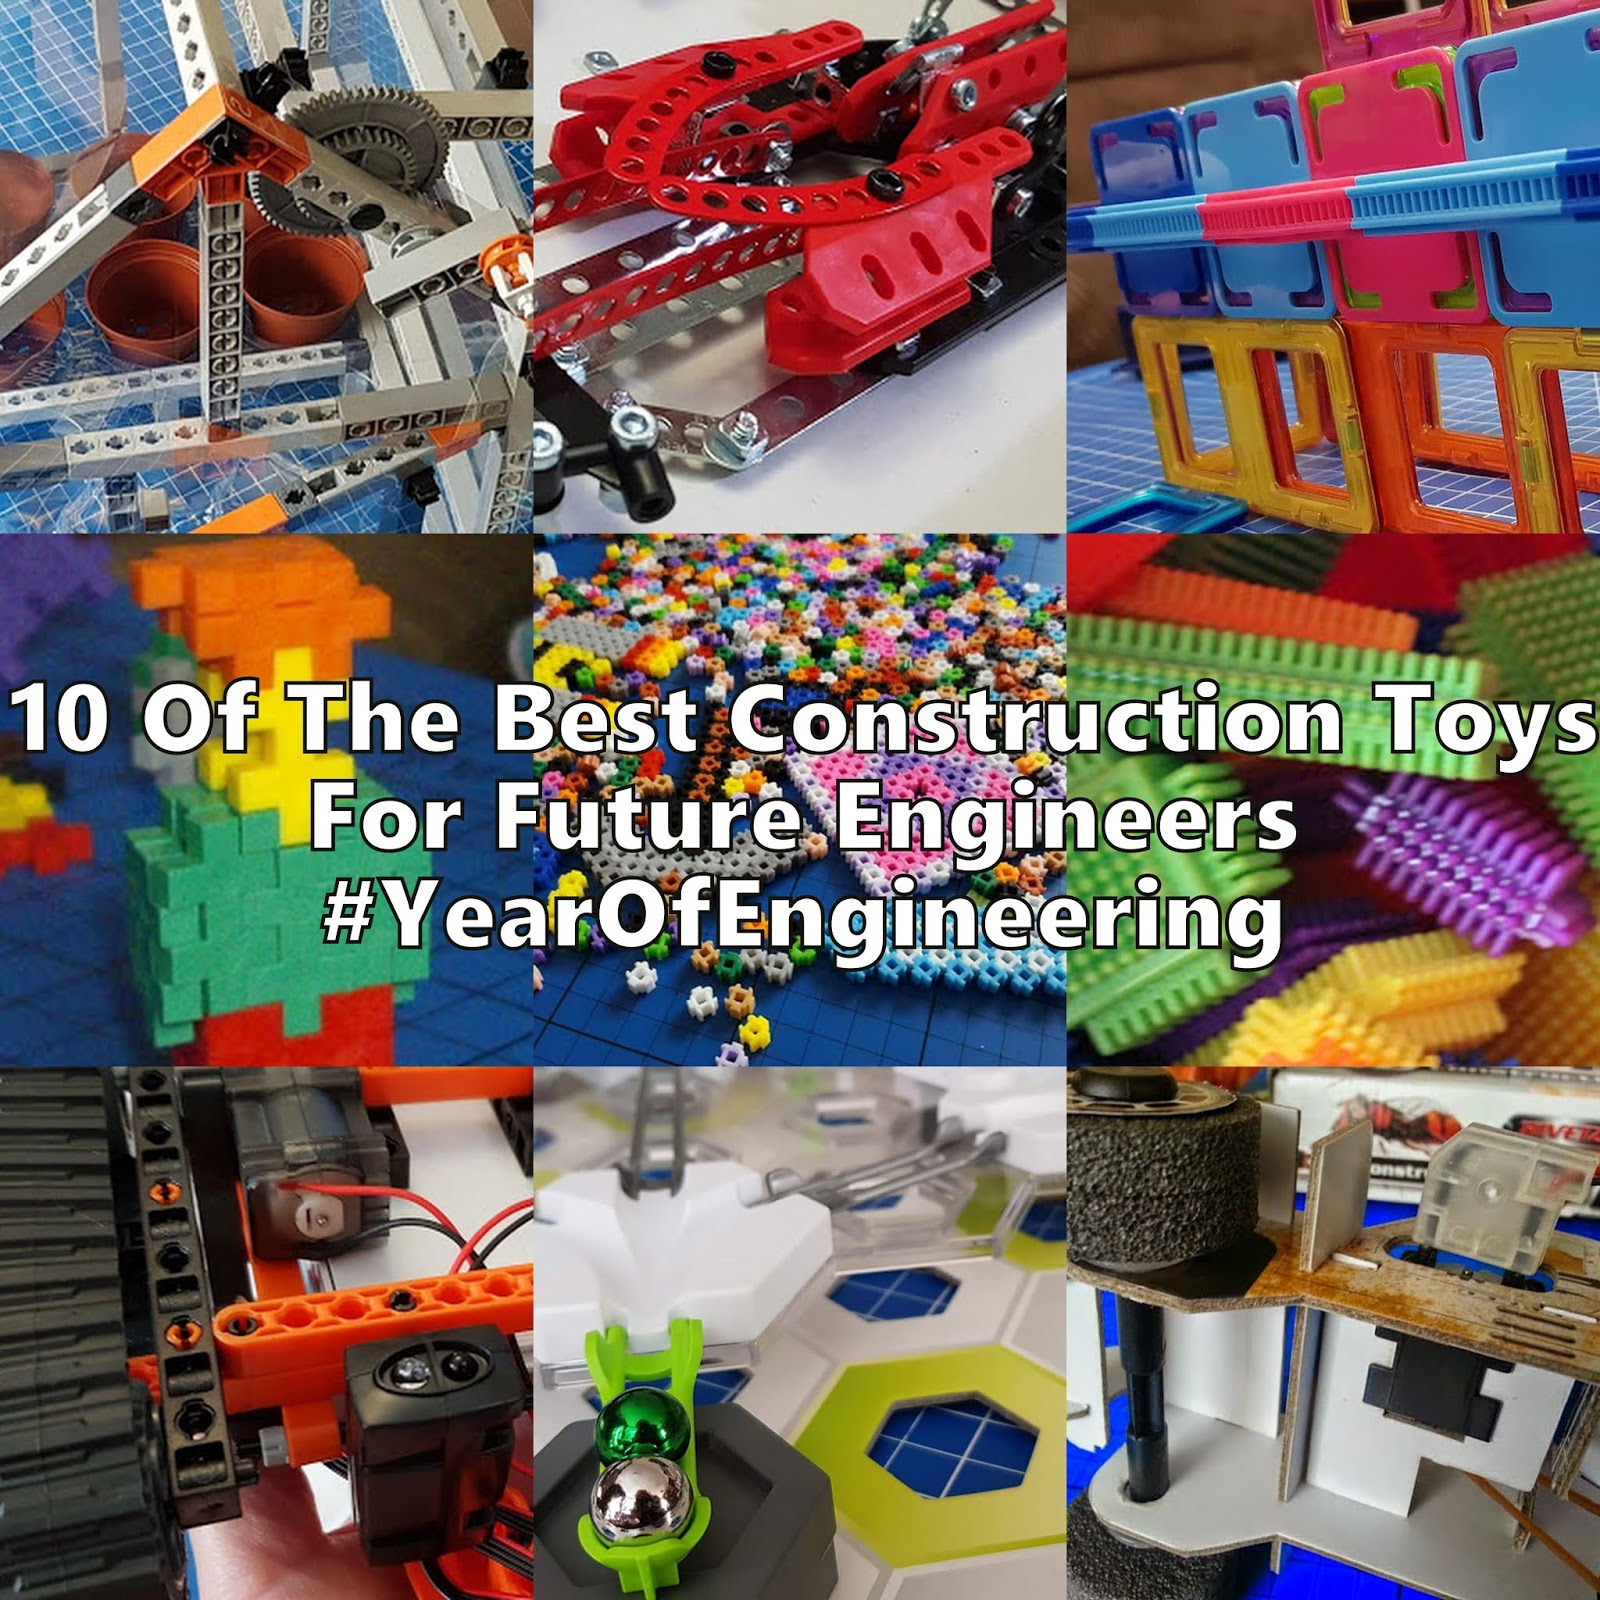 10 Of The Best Construction Toys For Future Engineers # YearOfEngineering